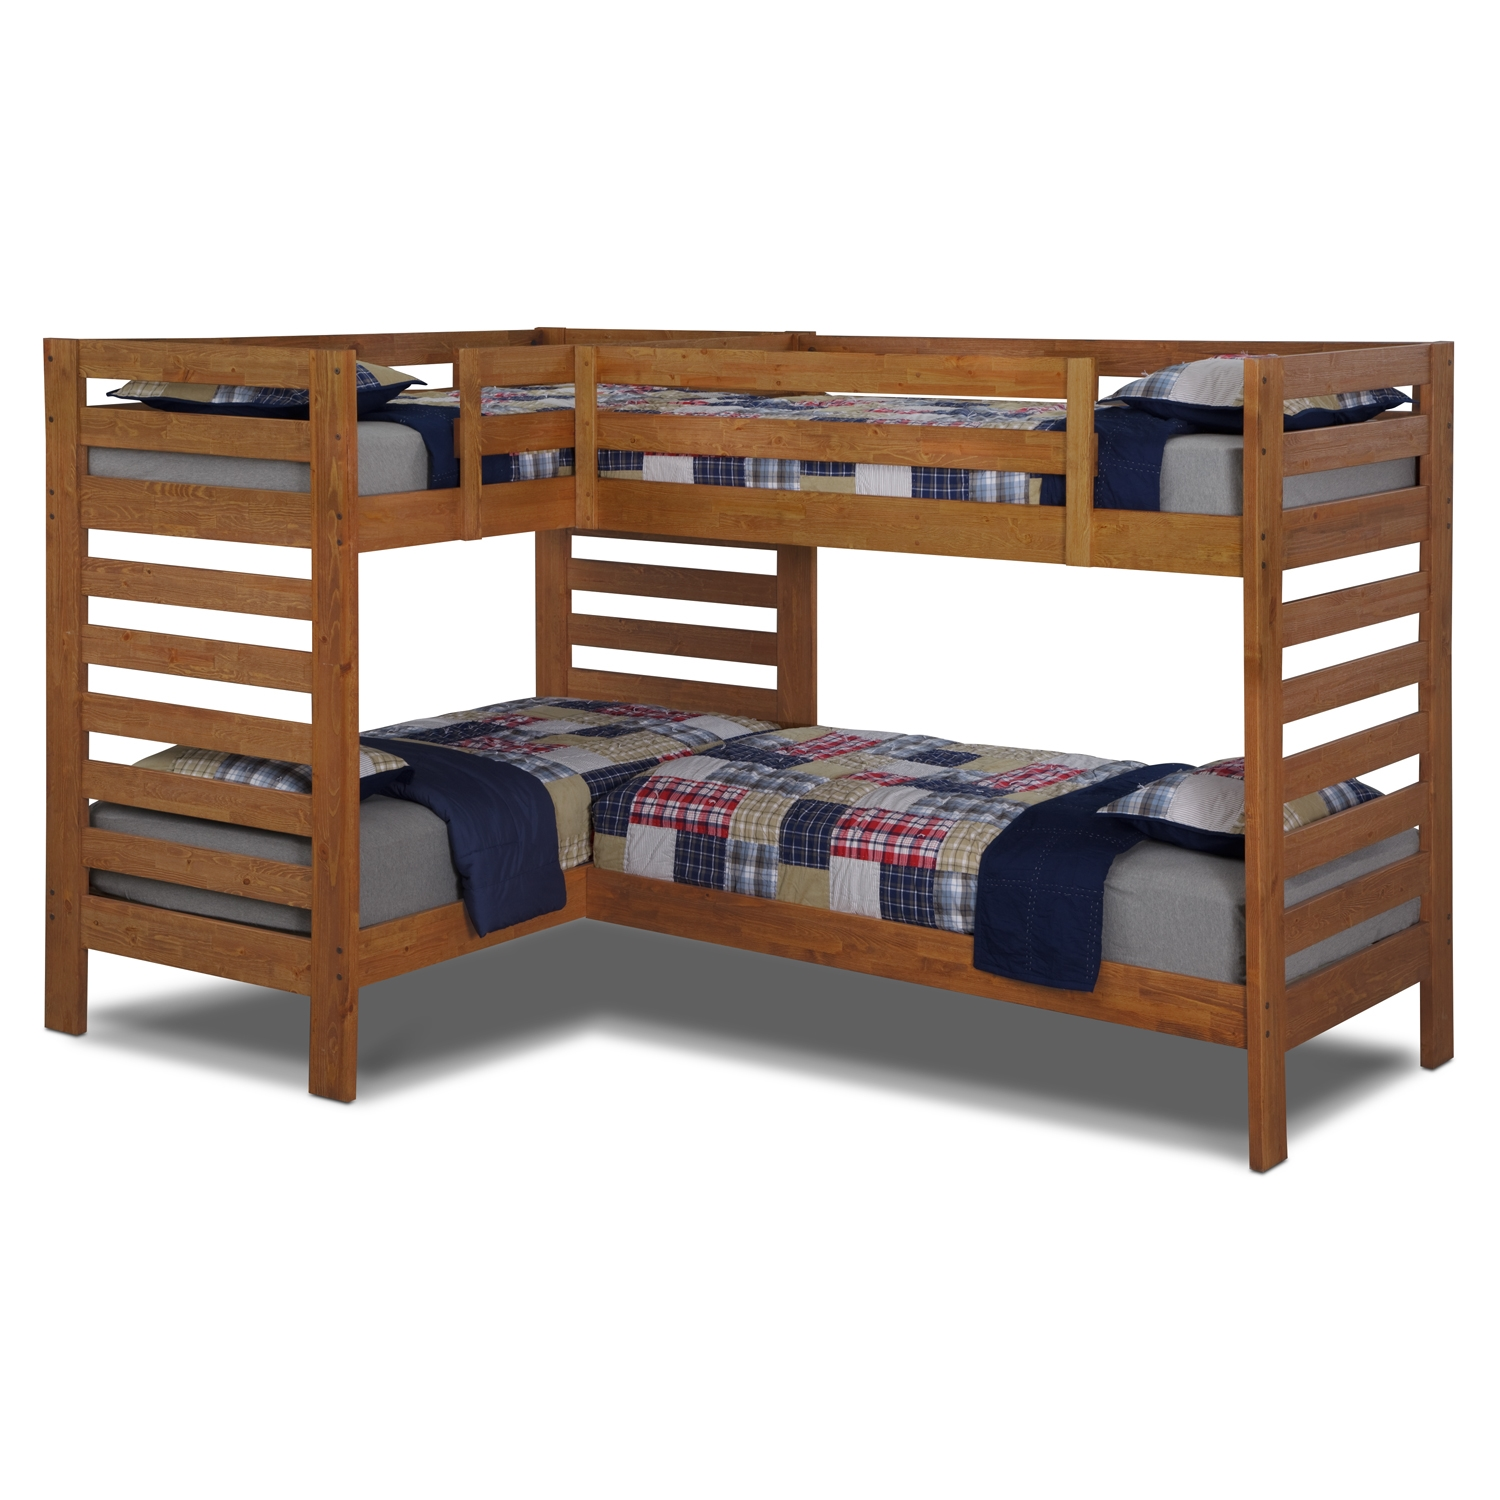 Brotherly love how to decorate a bedroom for two boys for Furniture 123 bunk beds